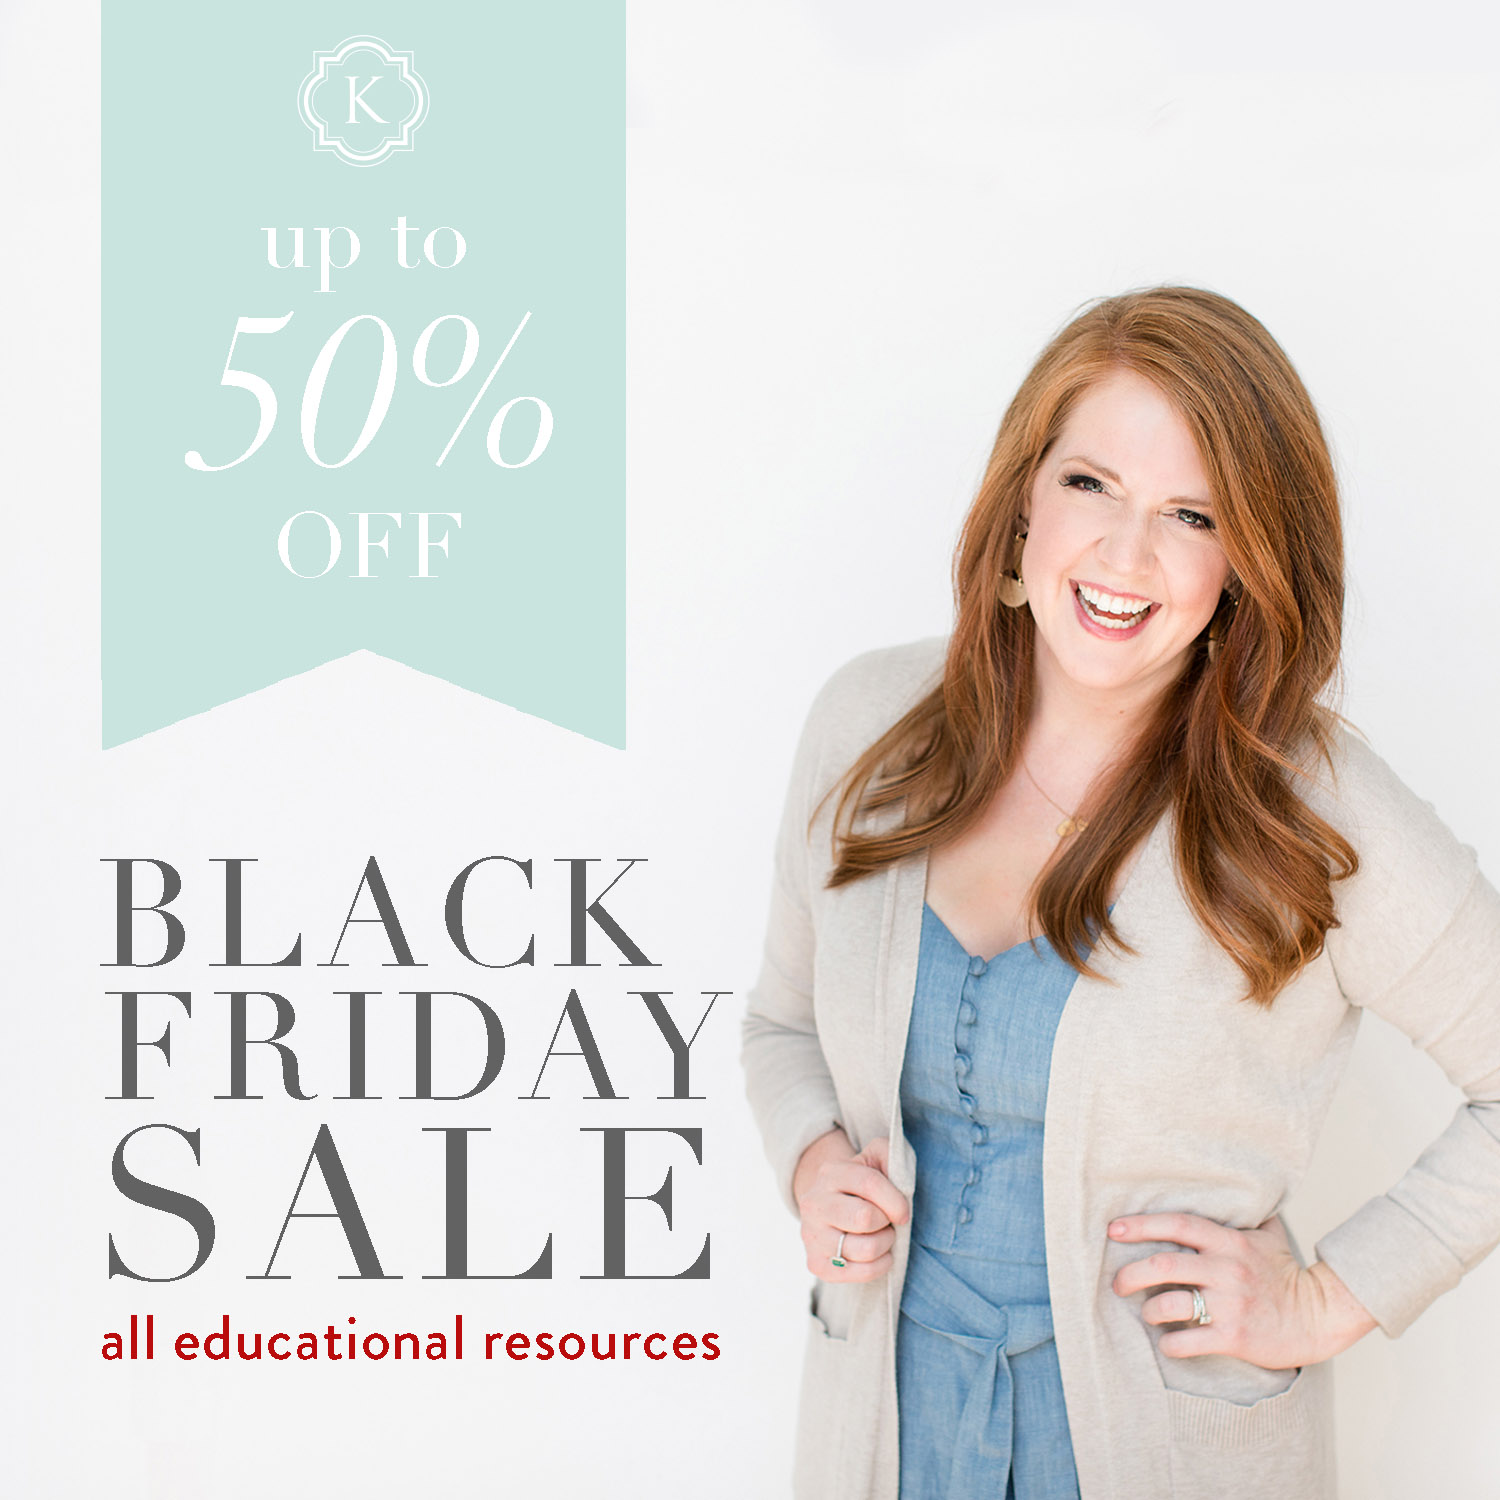 """On the left side of the graphic is a mint green flag with text that reads """"Up to 50% off"""". Underneath that is text that reads """"Black Friday Sale all educational resources"""". On the right side of the graphic is a white woman with reddish-brown hair wearing a denim dress and a white sweater."""